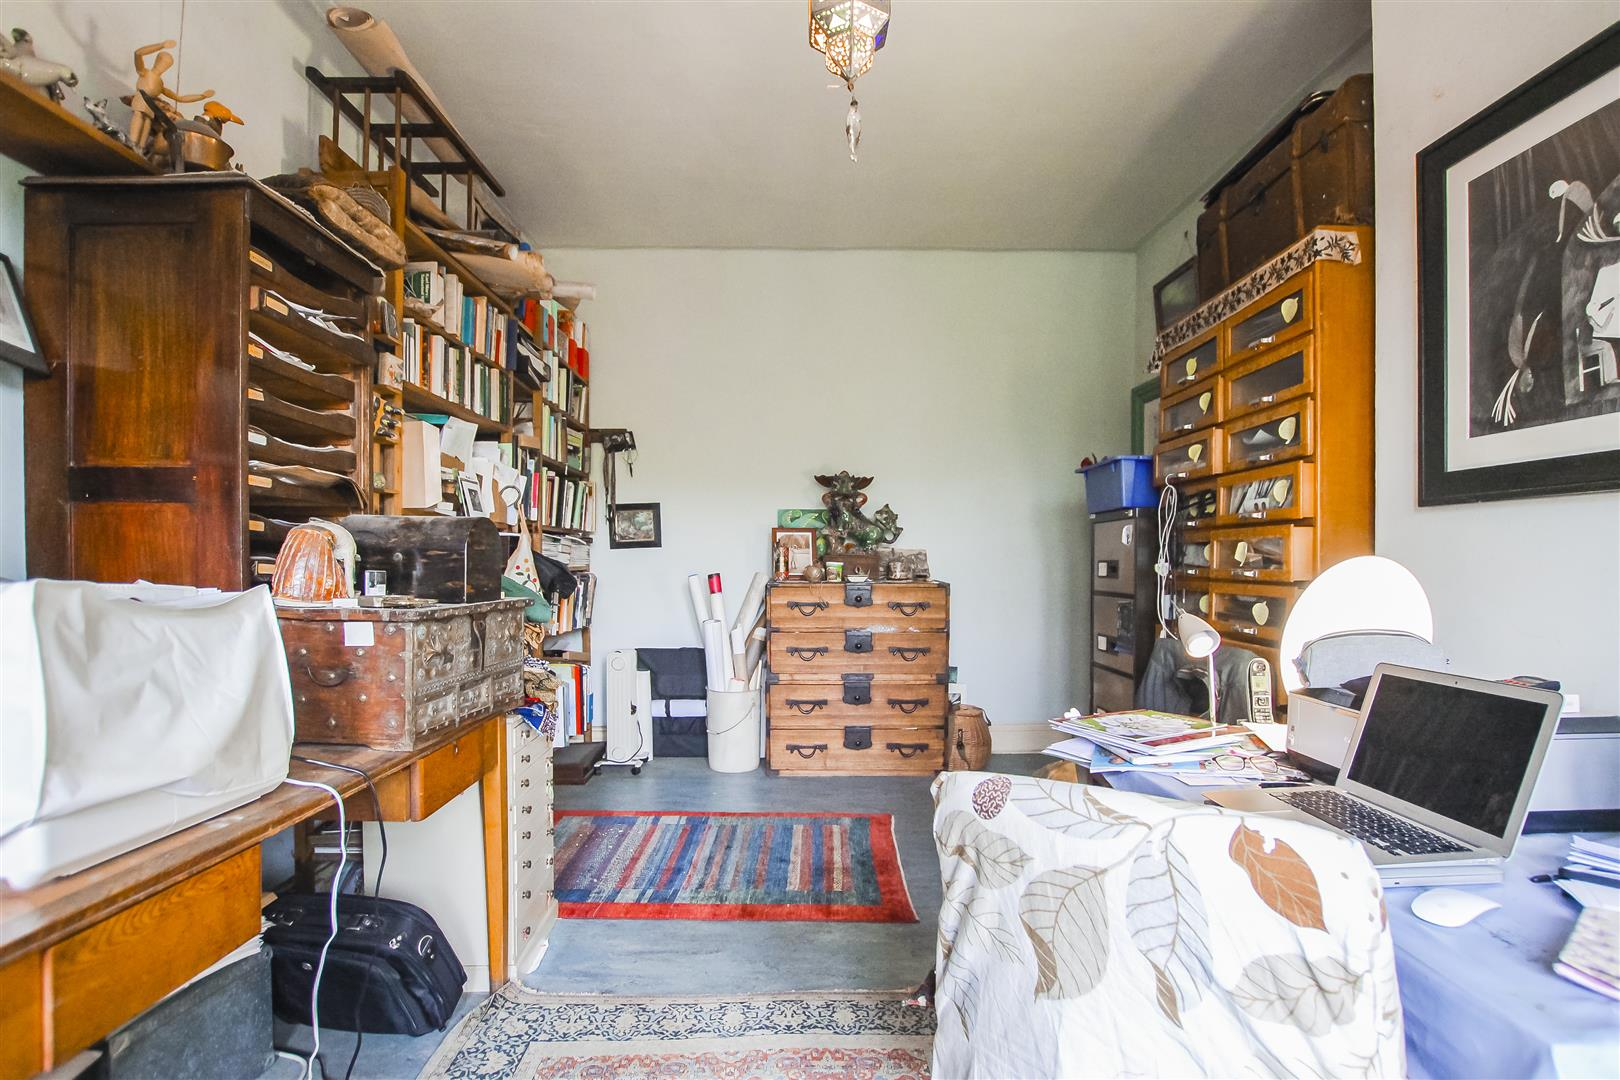 5 Bedroom Farmhouse For Sale - Image 36